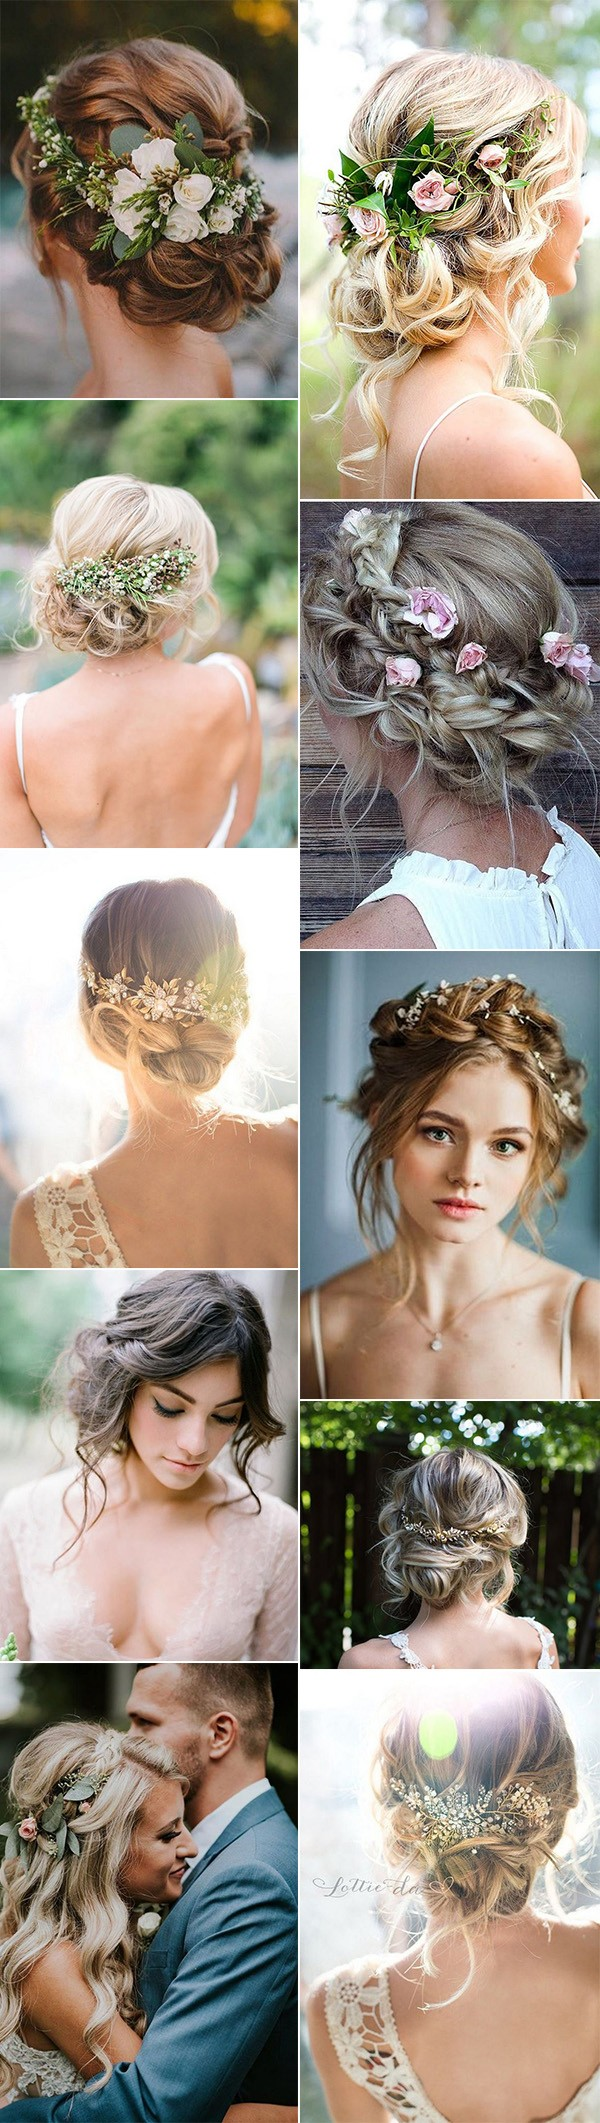 updos boho chic wedding hairstyles